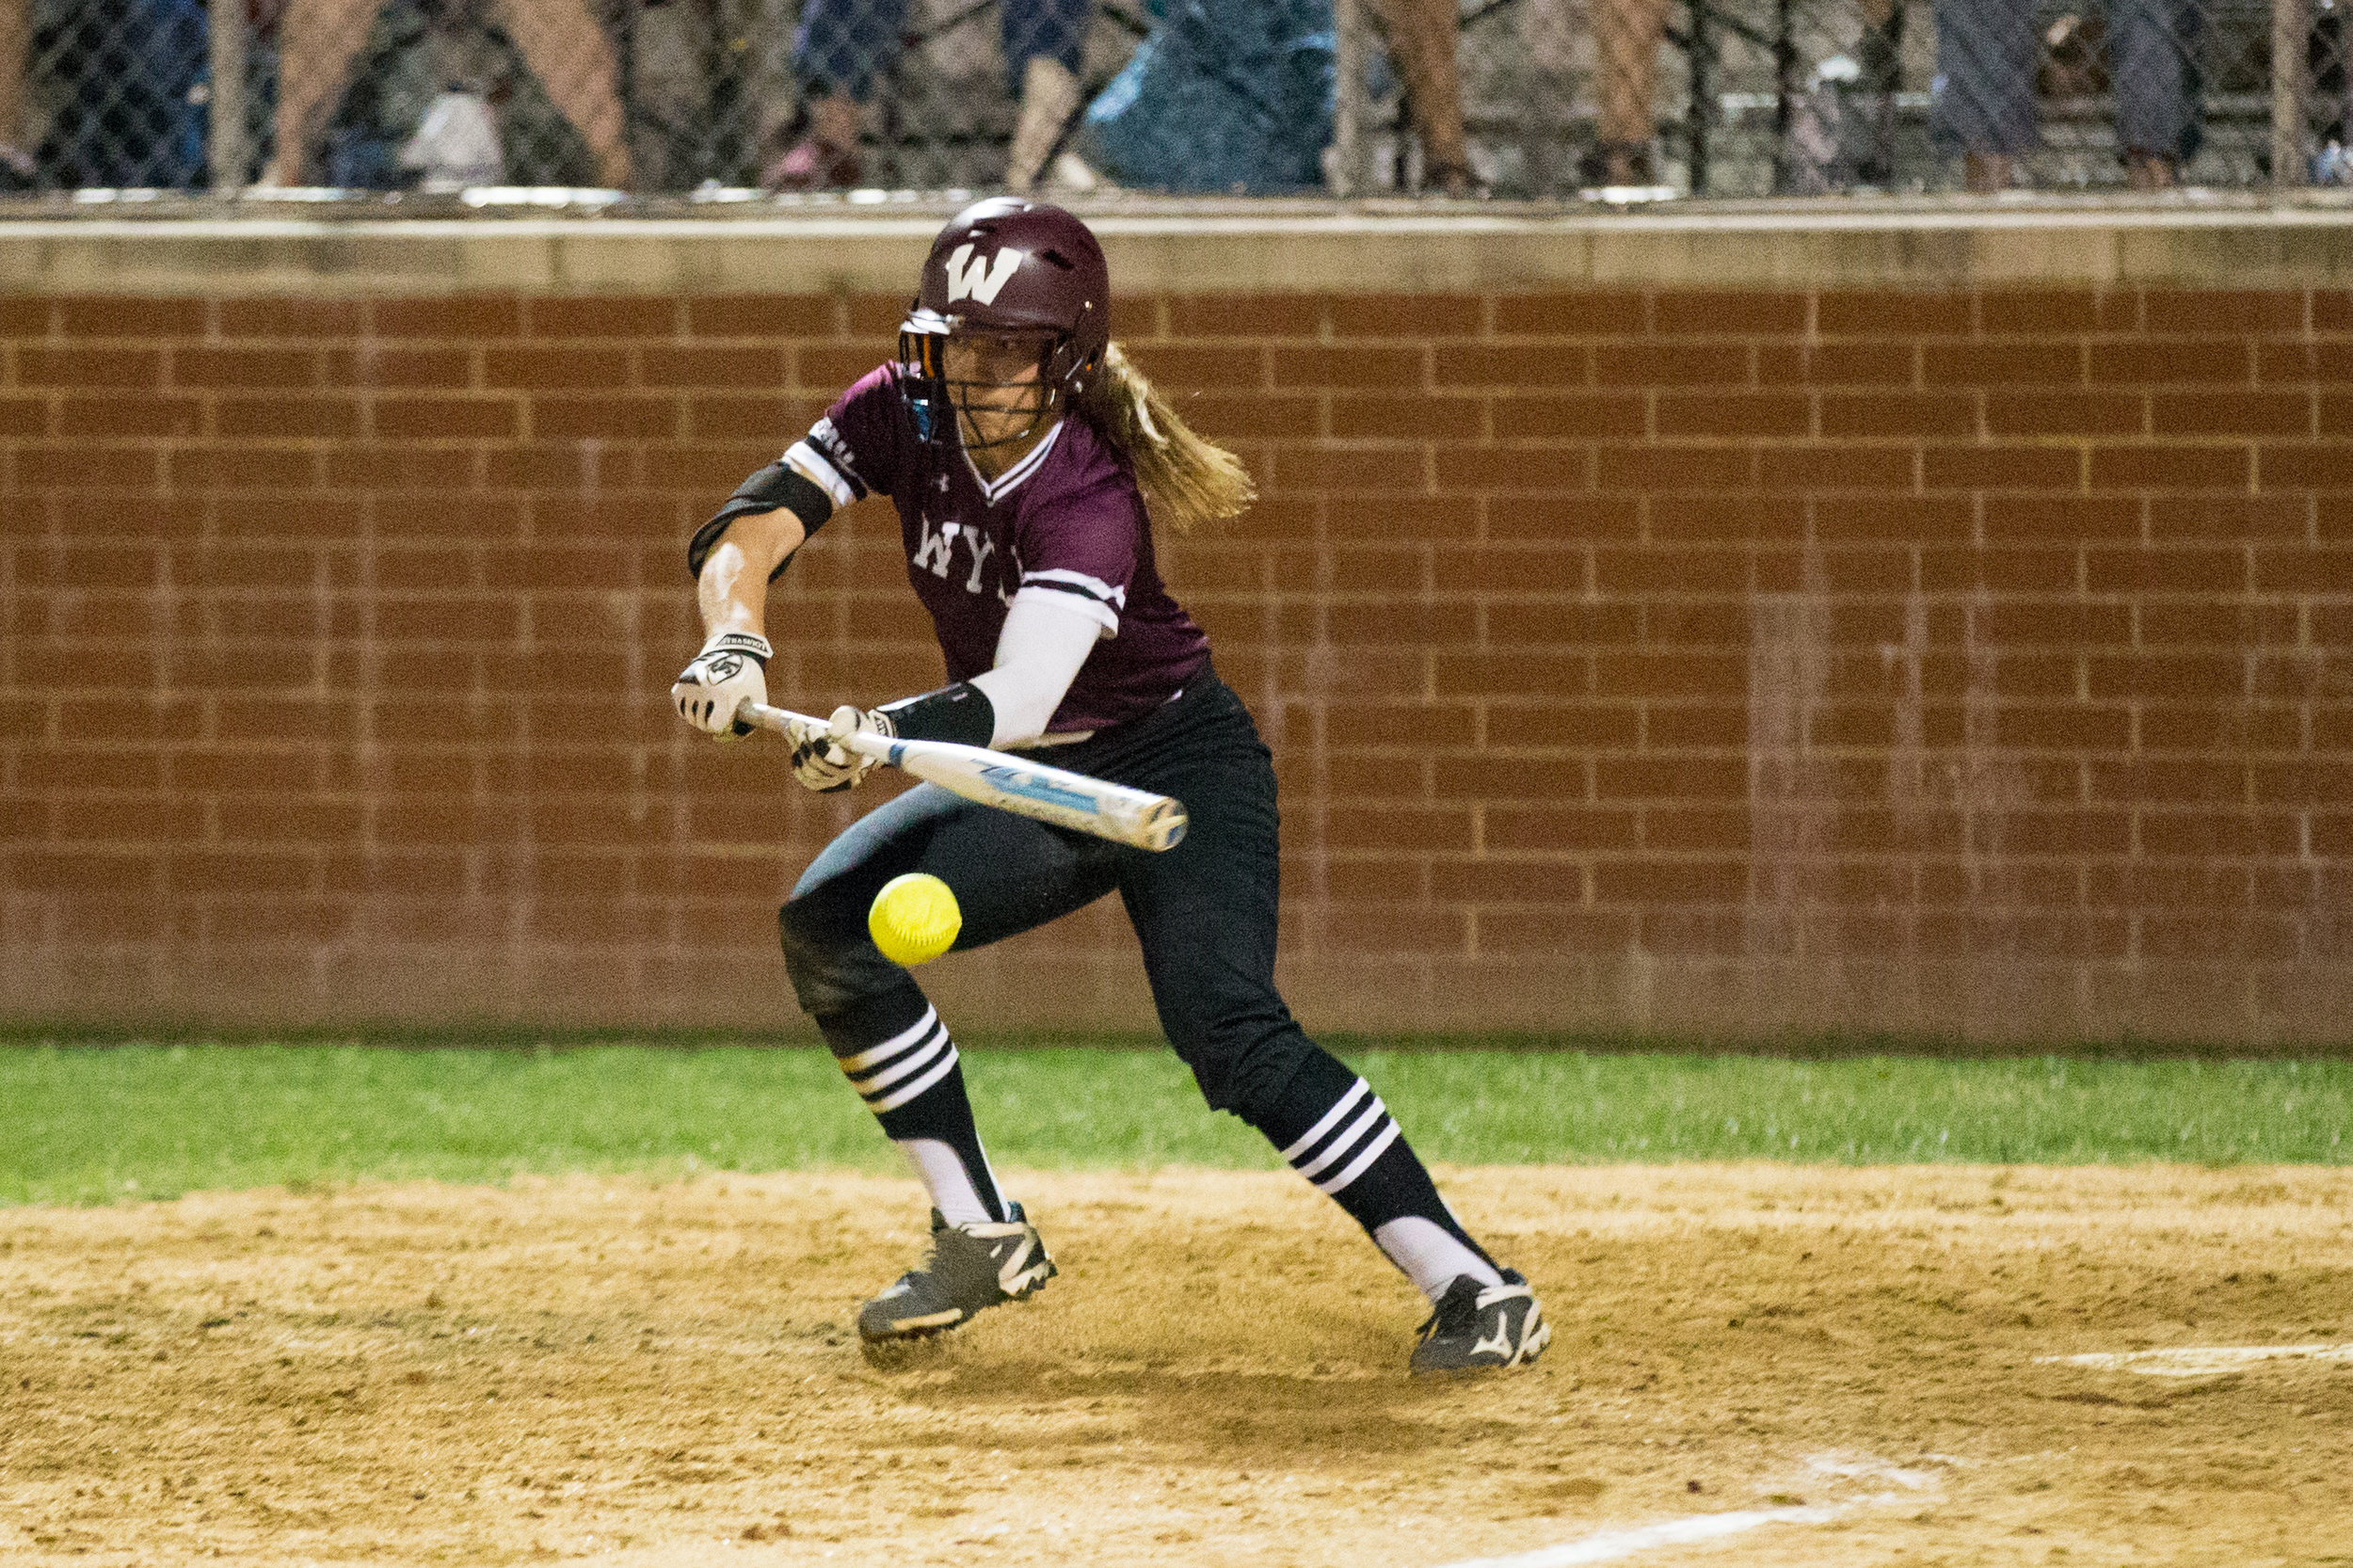 5_18 Wylie Softball-188.jpg